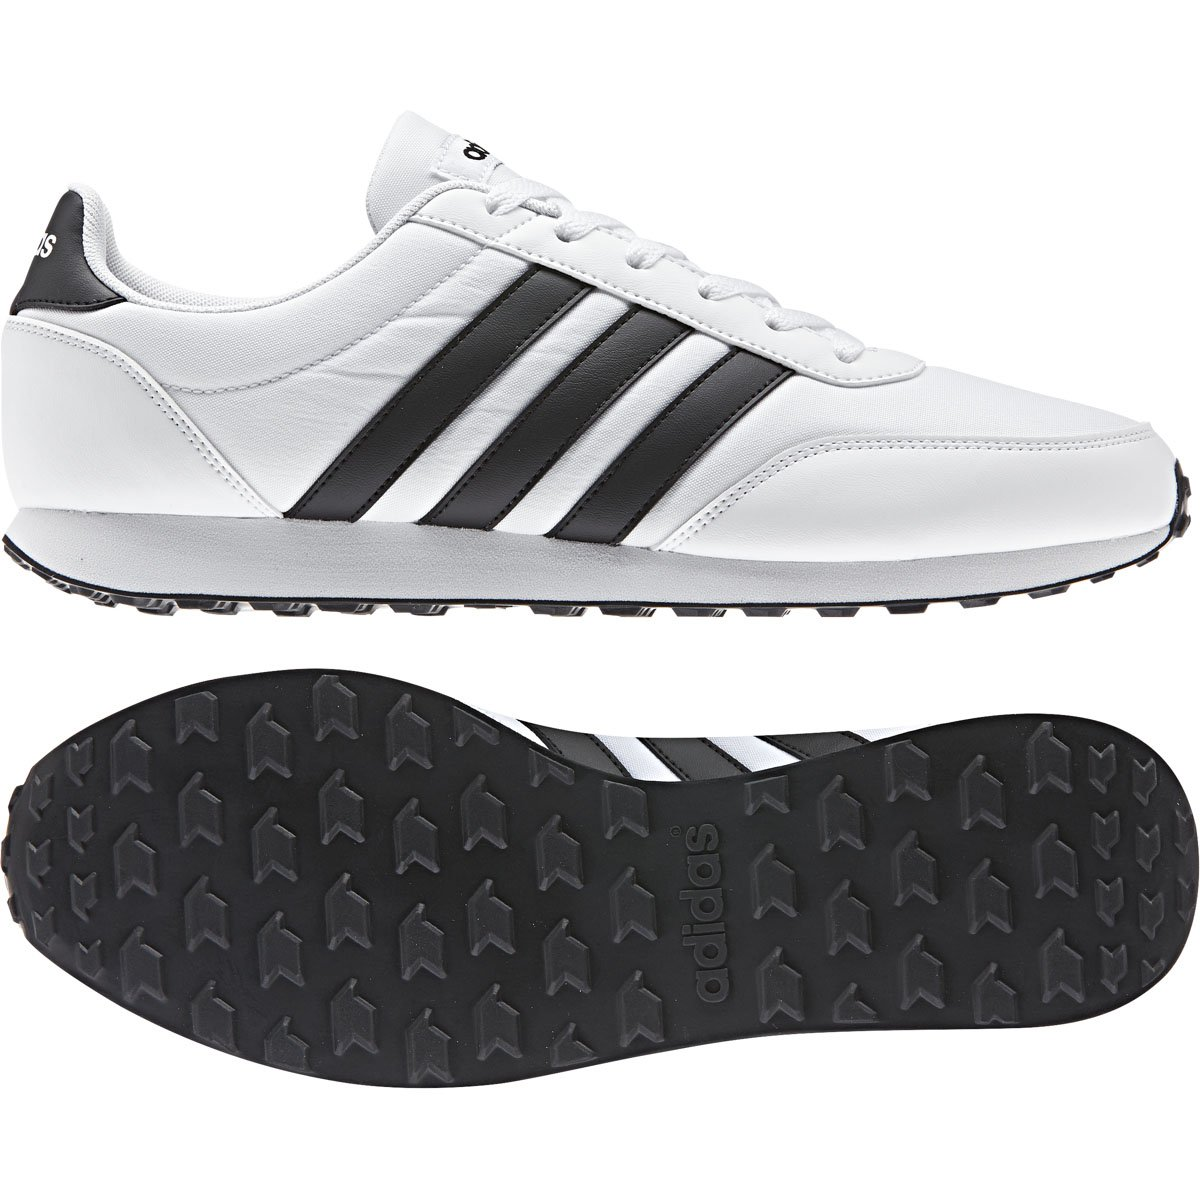 separation shoes c42b0 dd800 promo code for tenis zapatillas adidas neo v racer gris e4d6b 12412